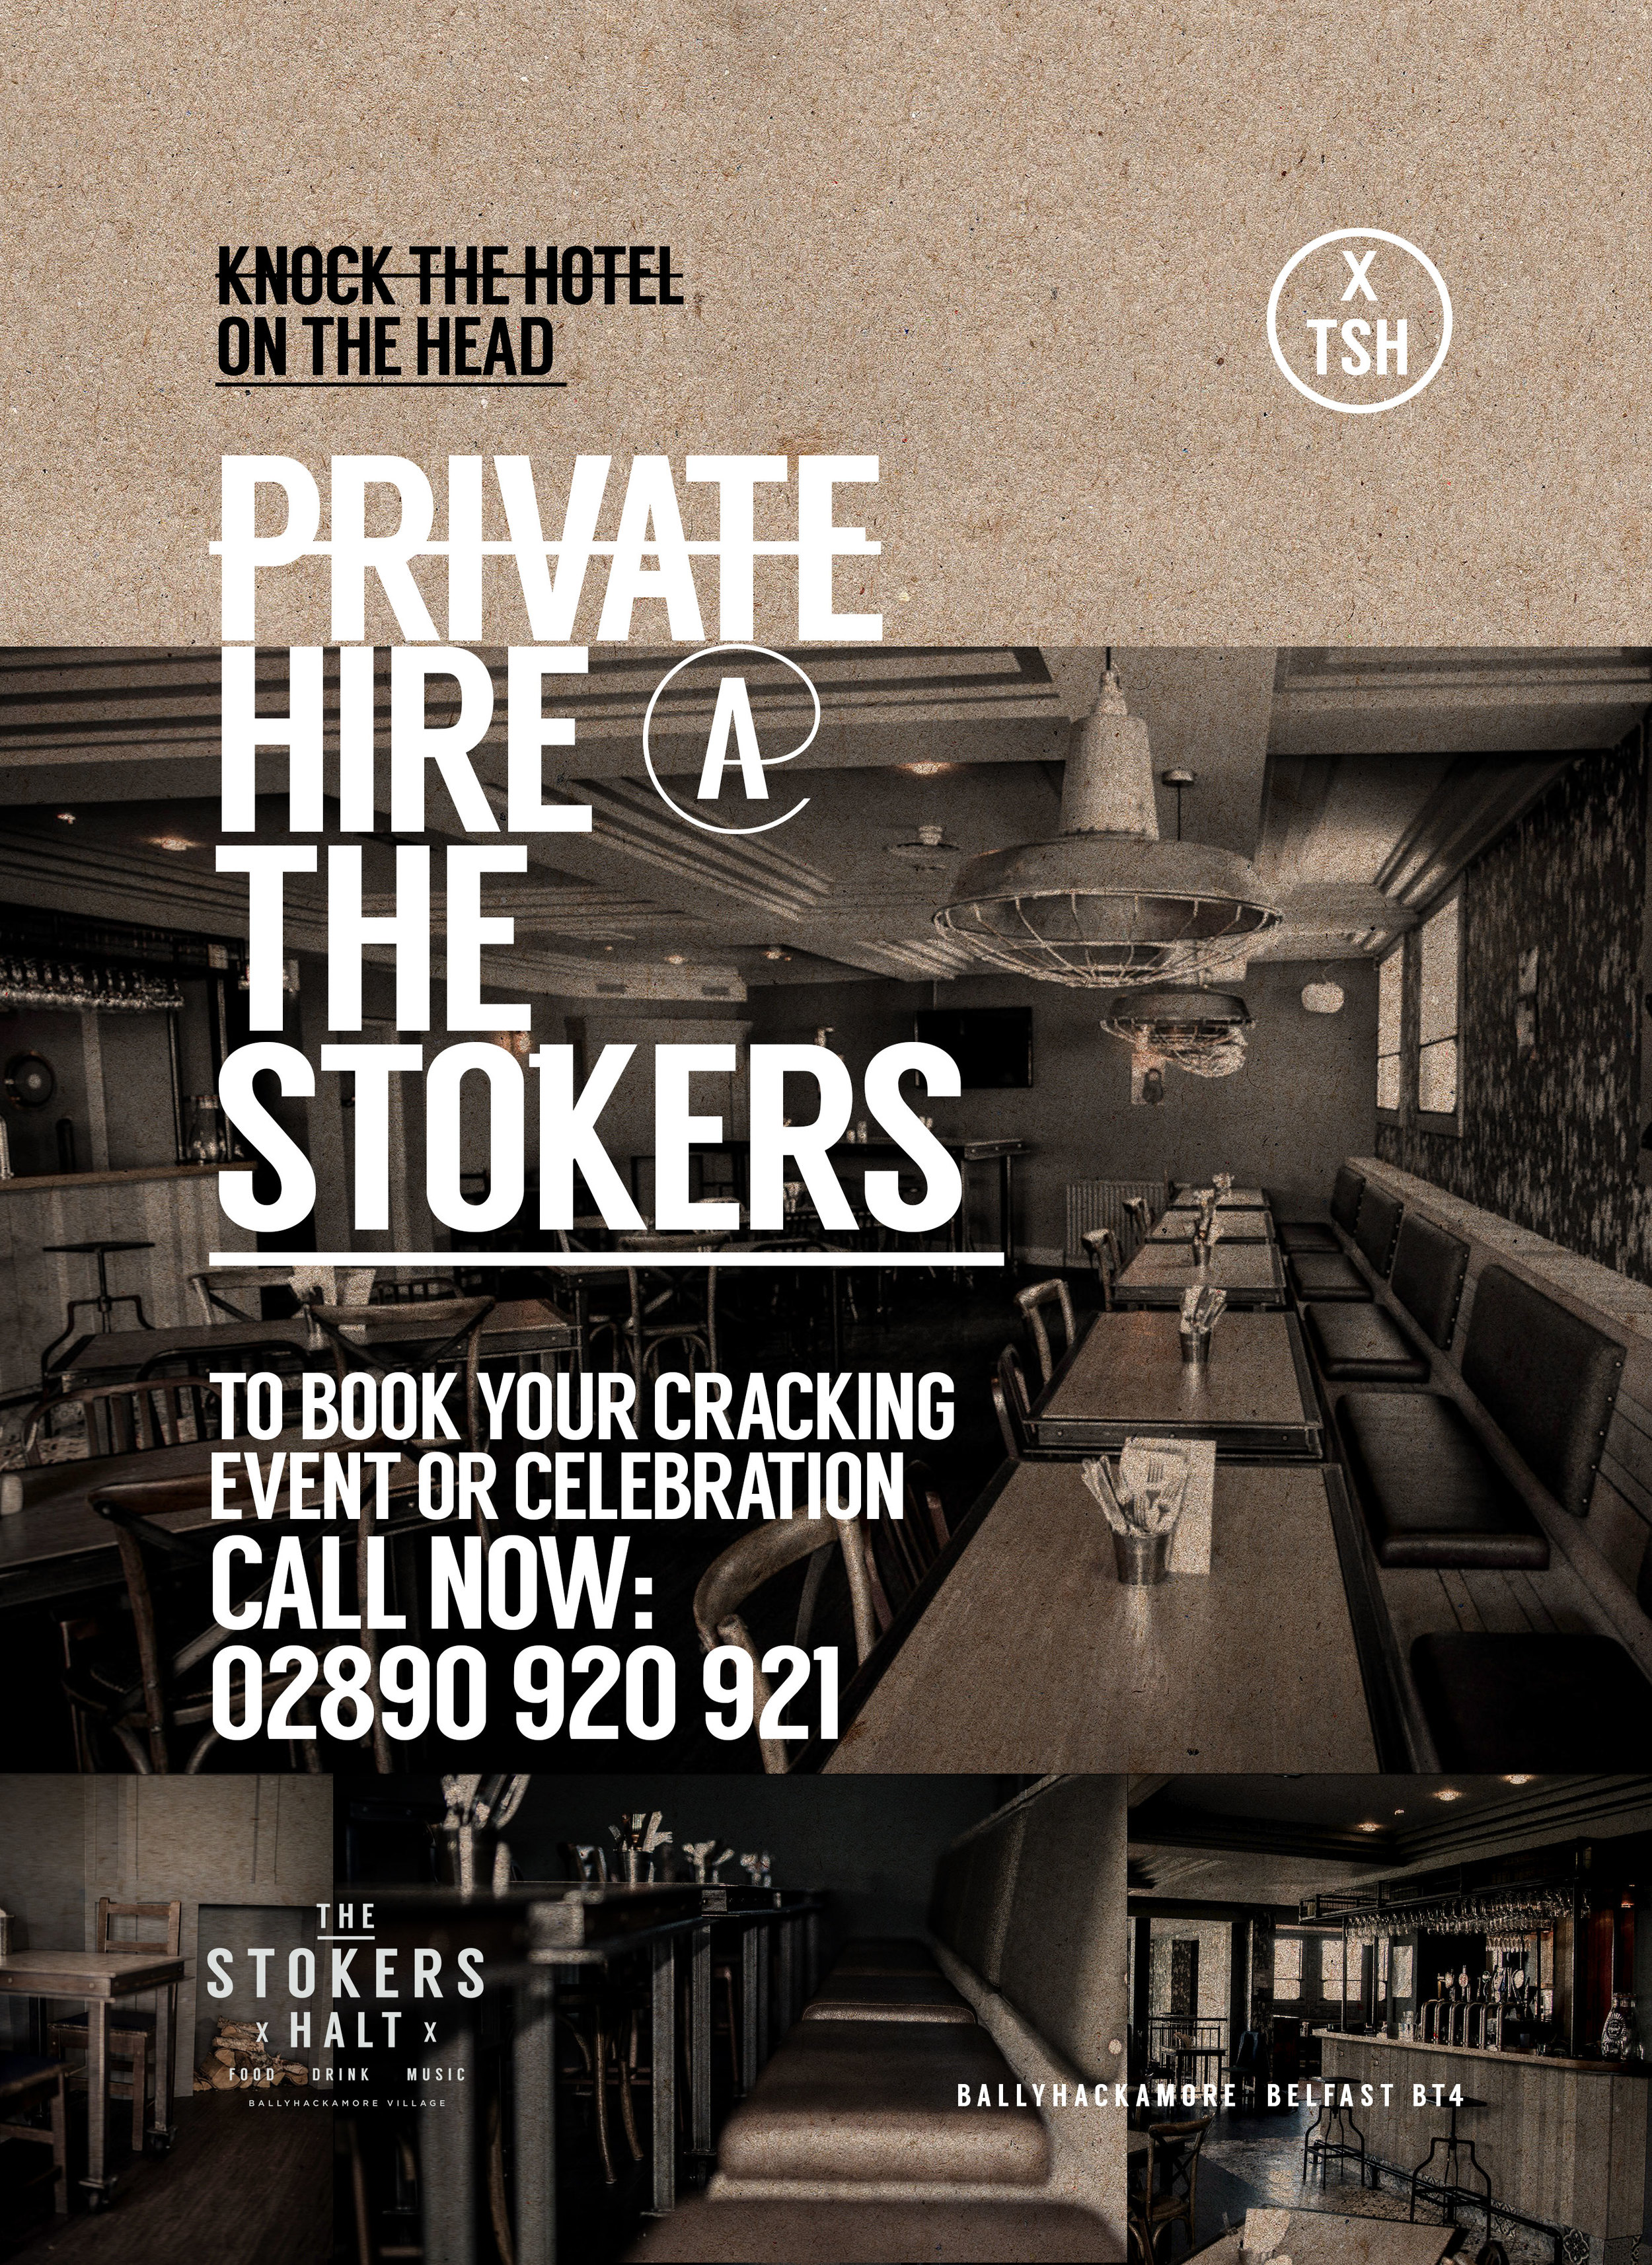 The-Stokers-Halt-Private-Hire